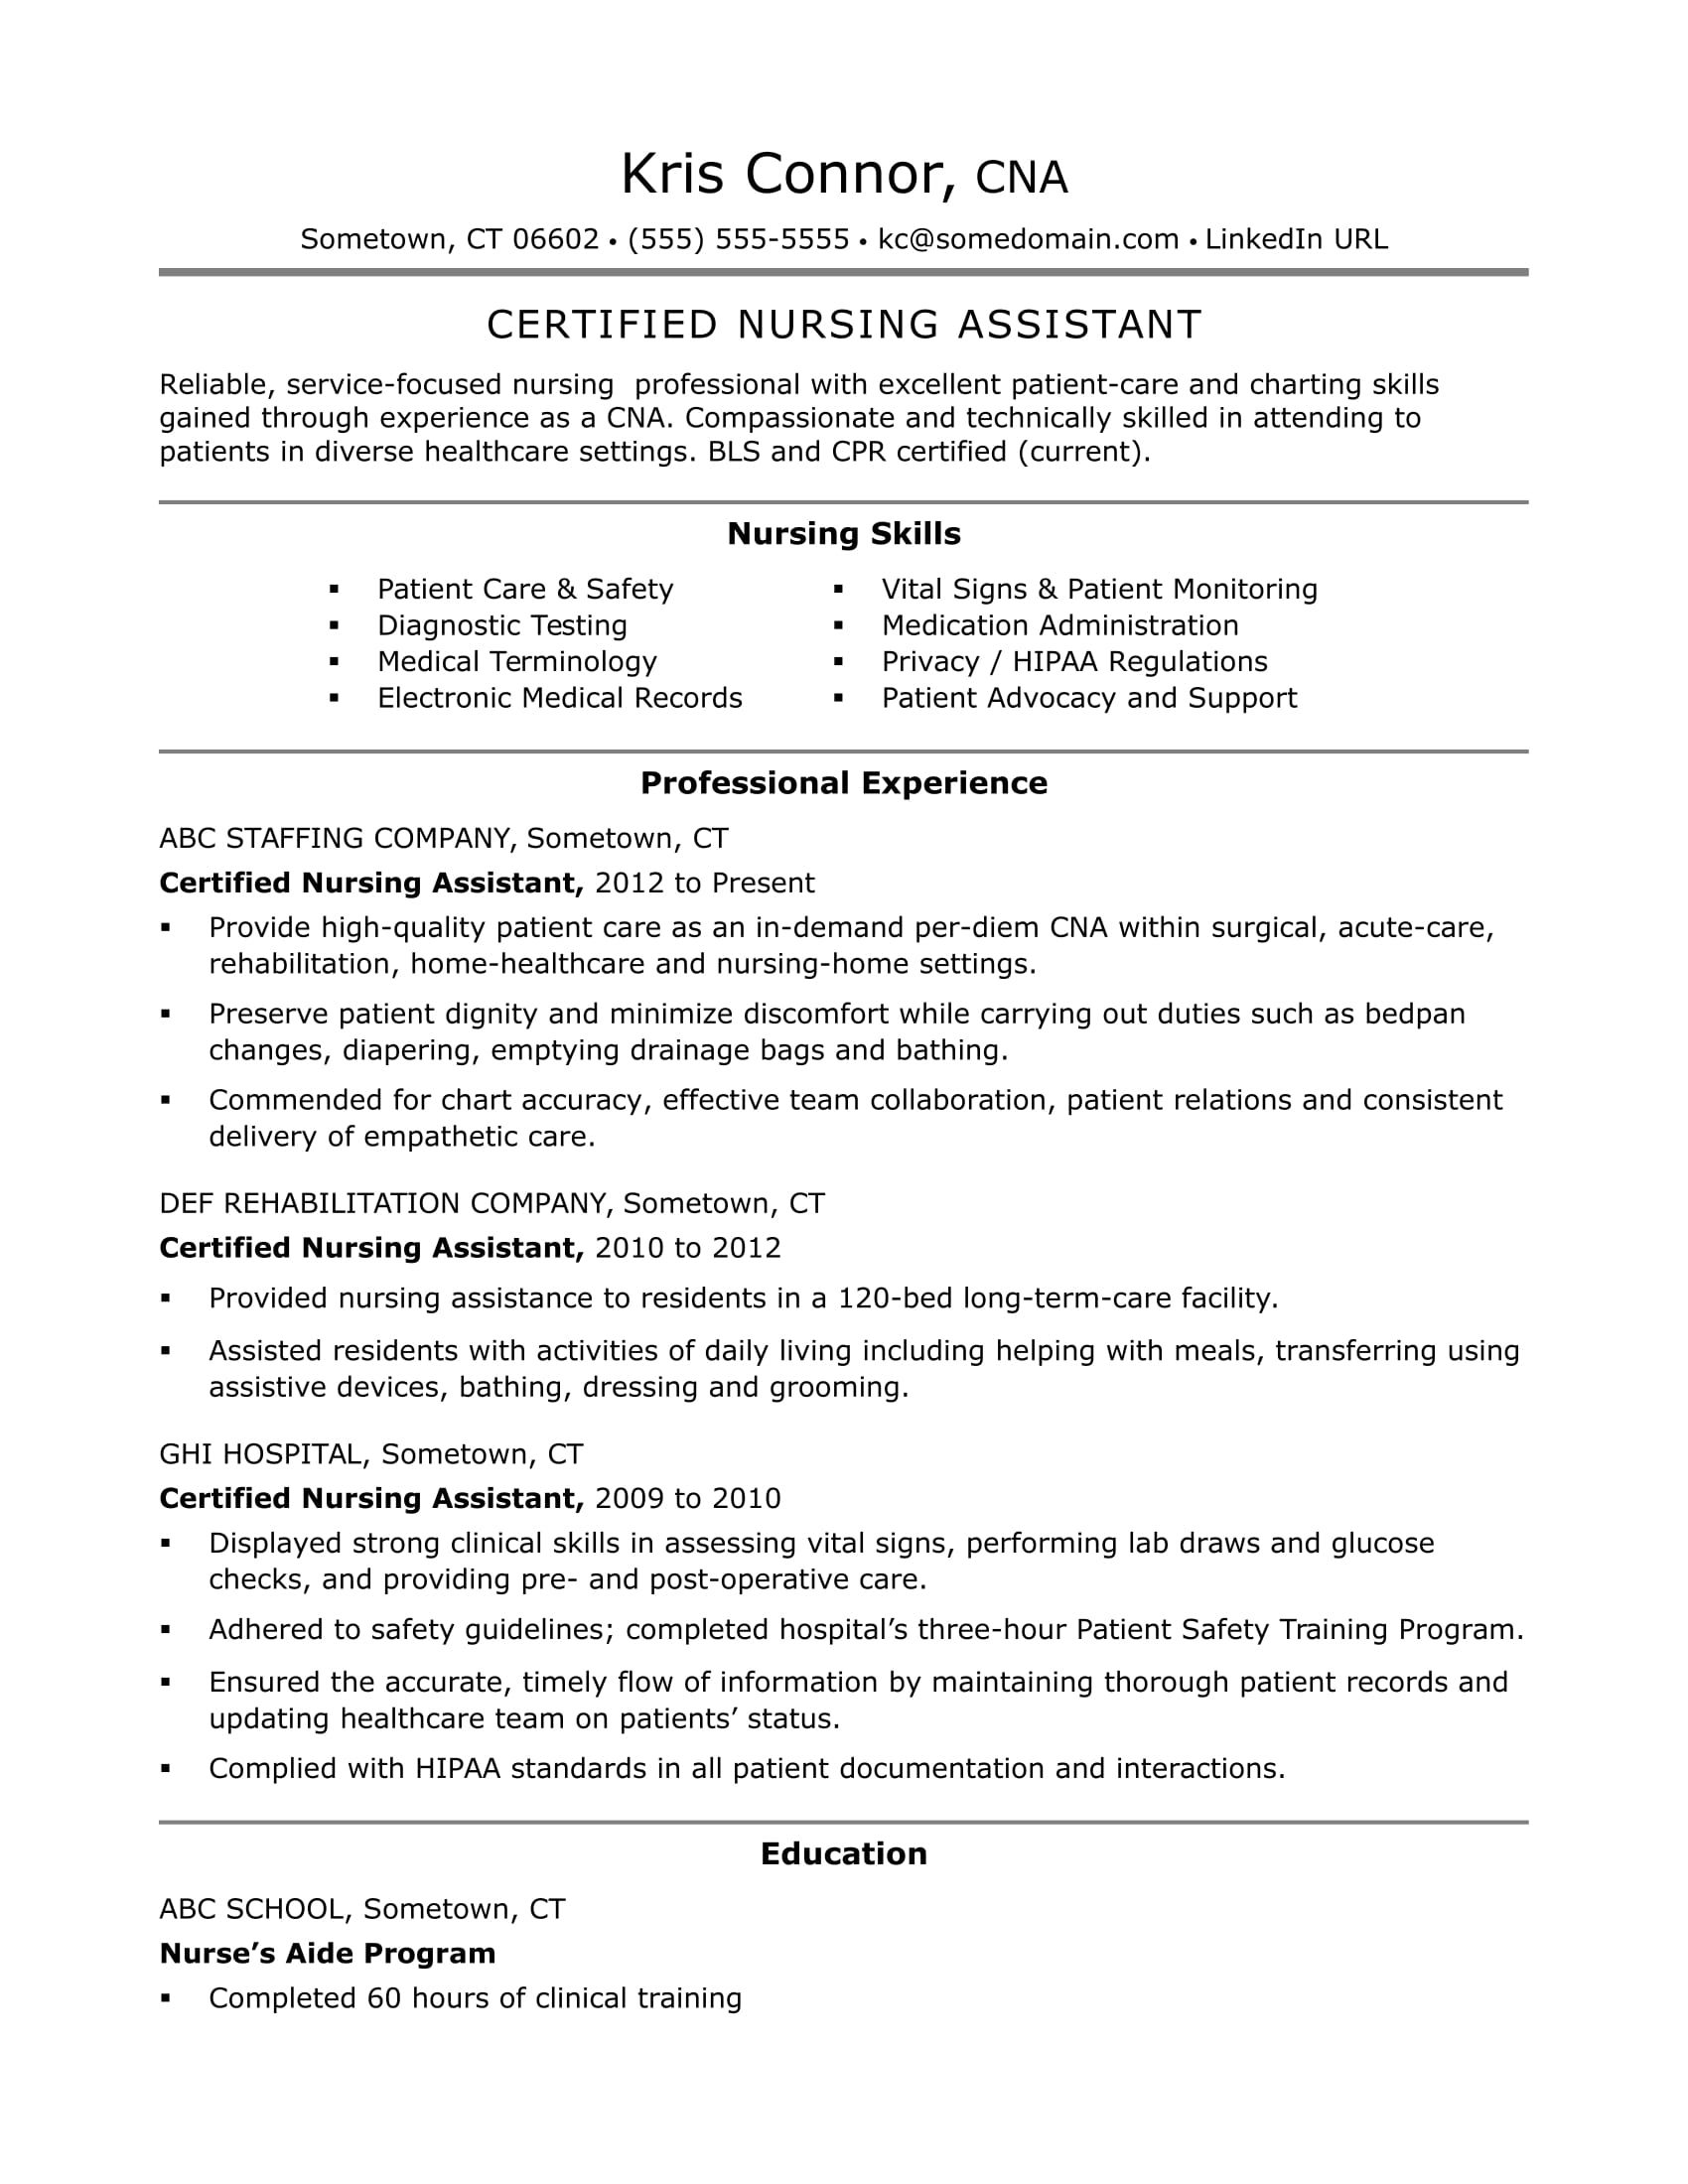 cna resume example - Certified Nursing Assistant Resume Samples